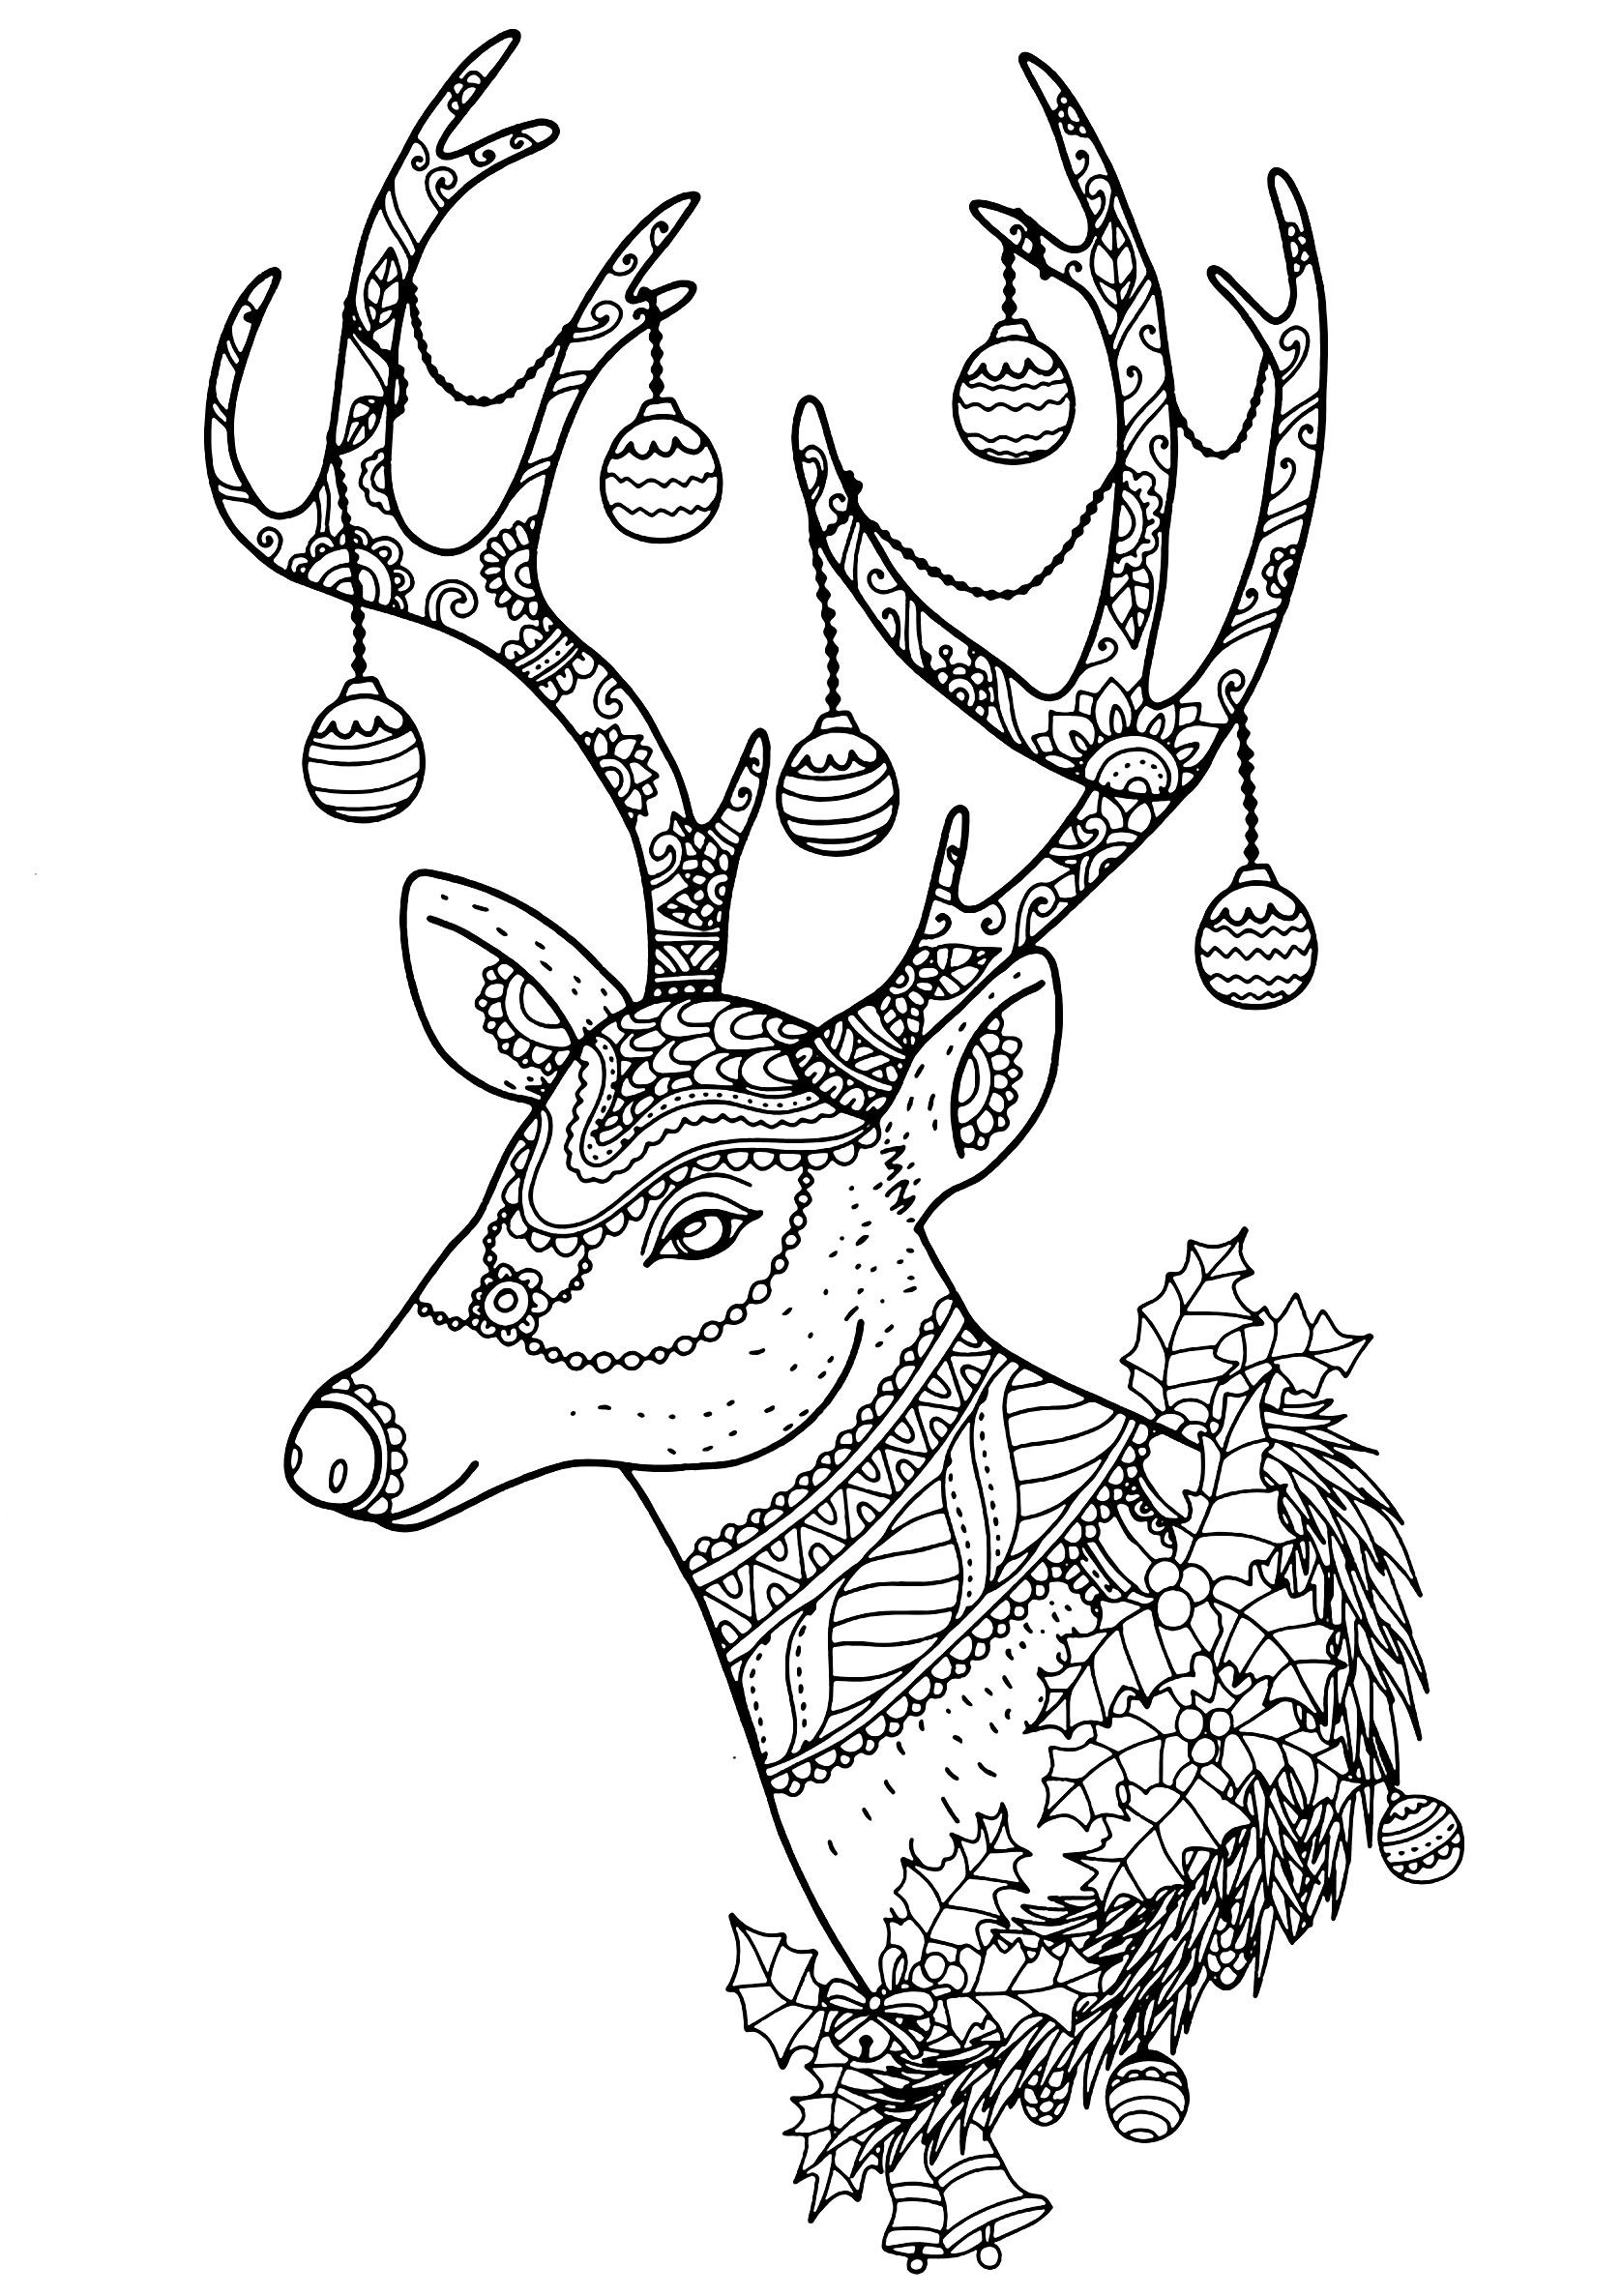 Unique Reindeer Page To Color Design Printable Coloring Sheet